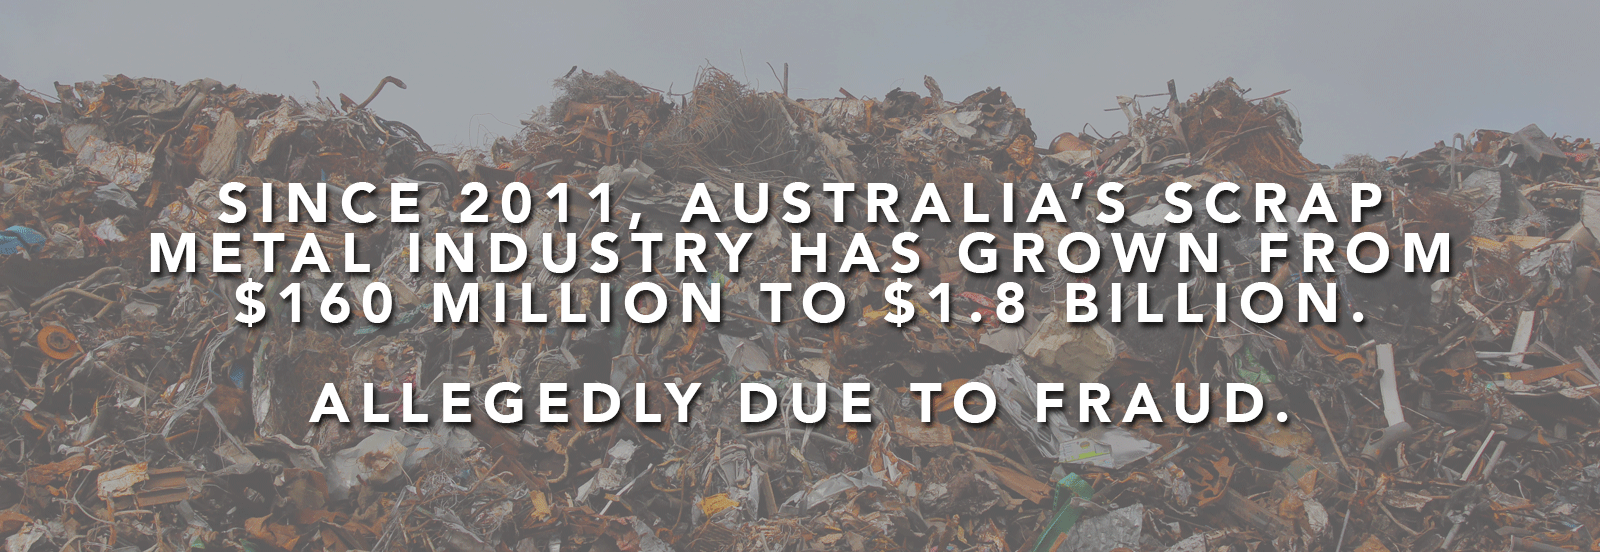 Gold GST Fraud Seems to Have Had a Significant Impact on the Scrap Metal Industry